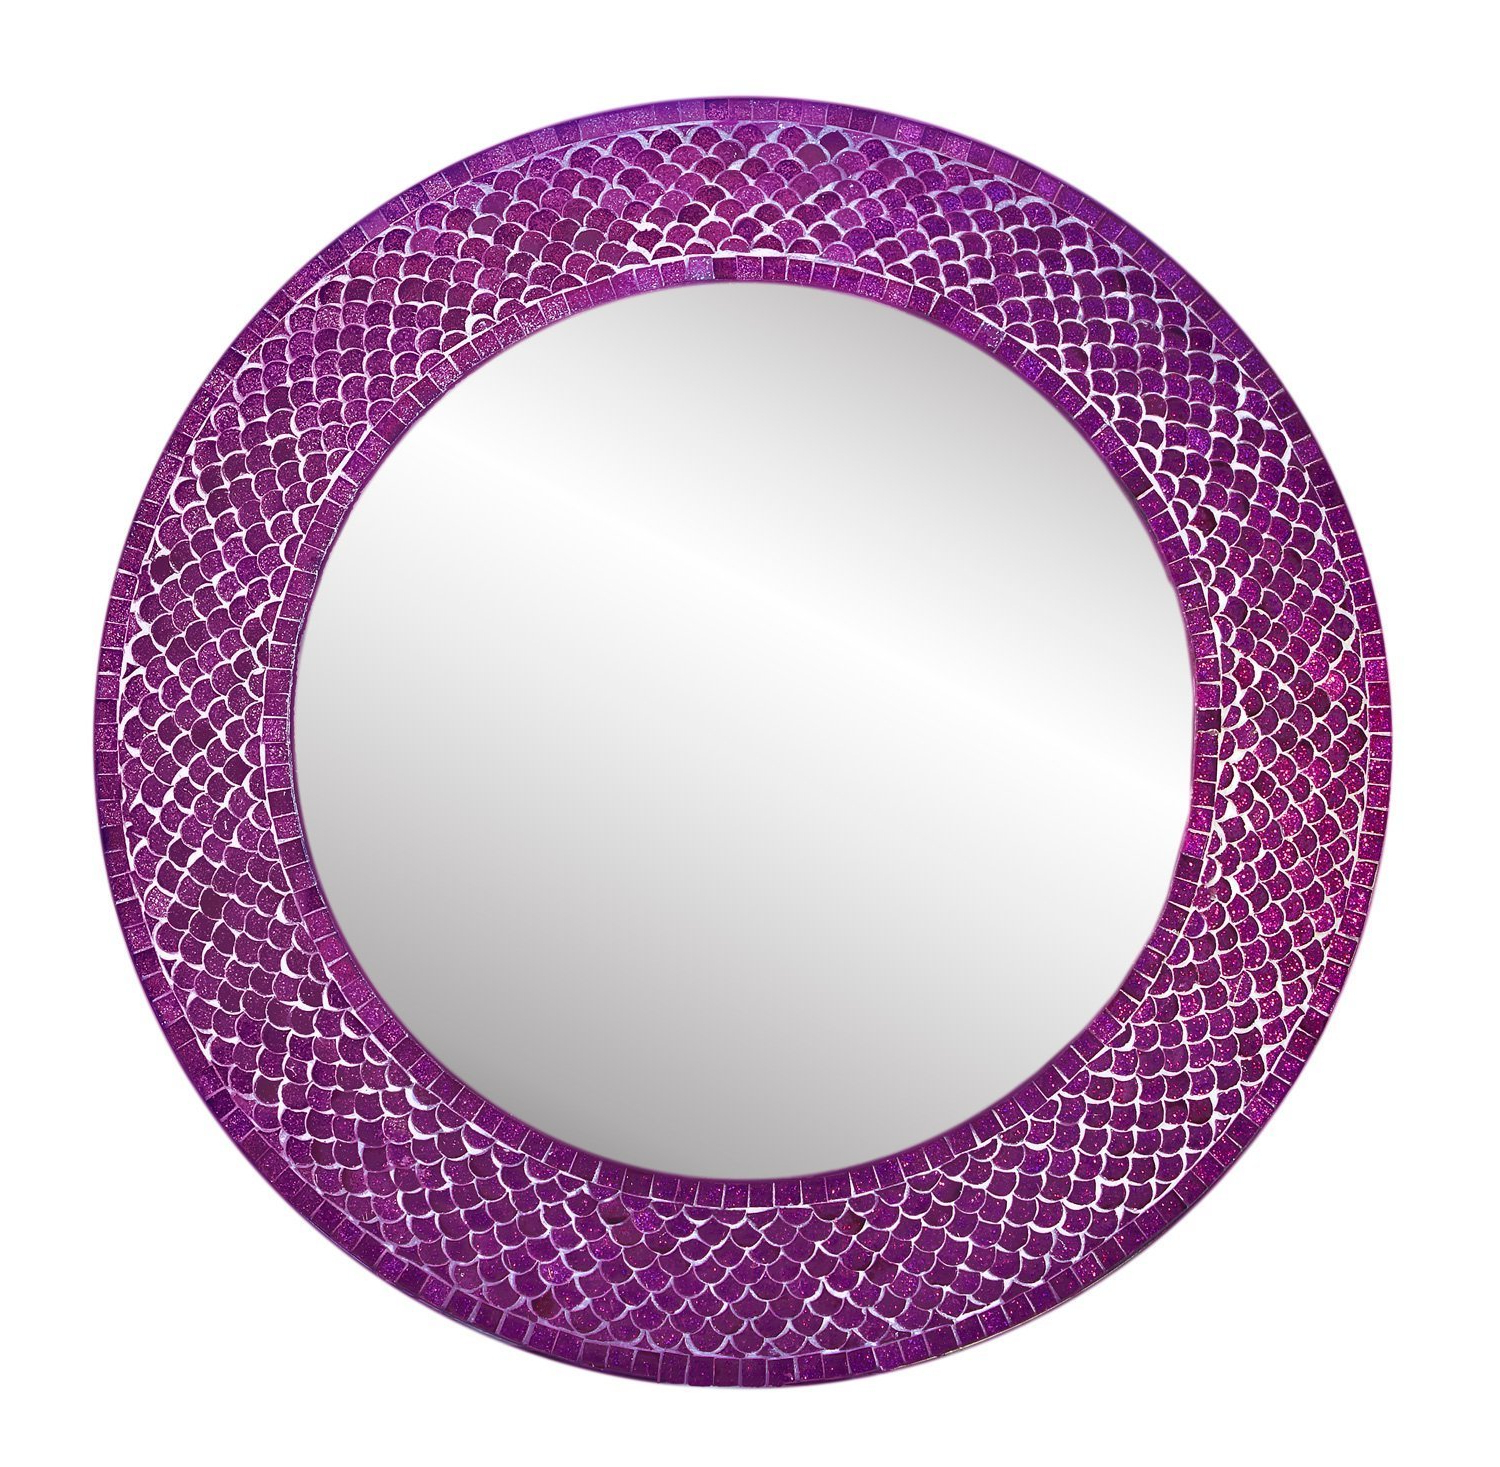 Purple Wall Mirrors For Most Recent Trend Shimmering Mermaid Glass Mosaic Tile Wall Mirror (View 10 of 20)